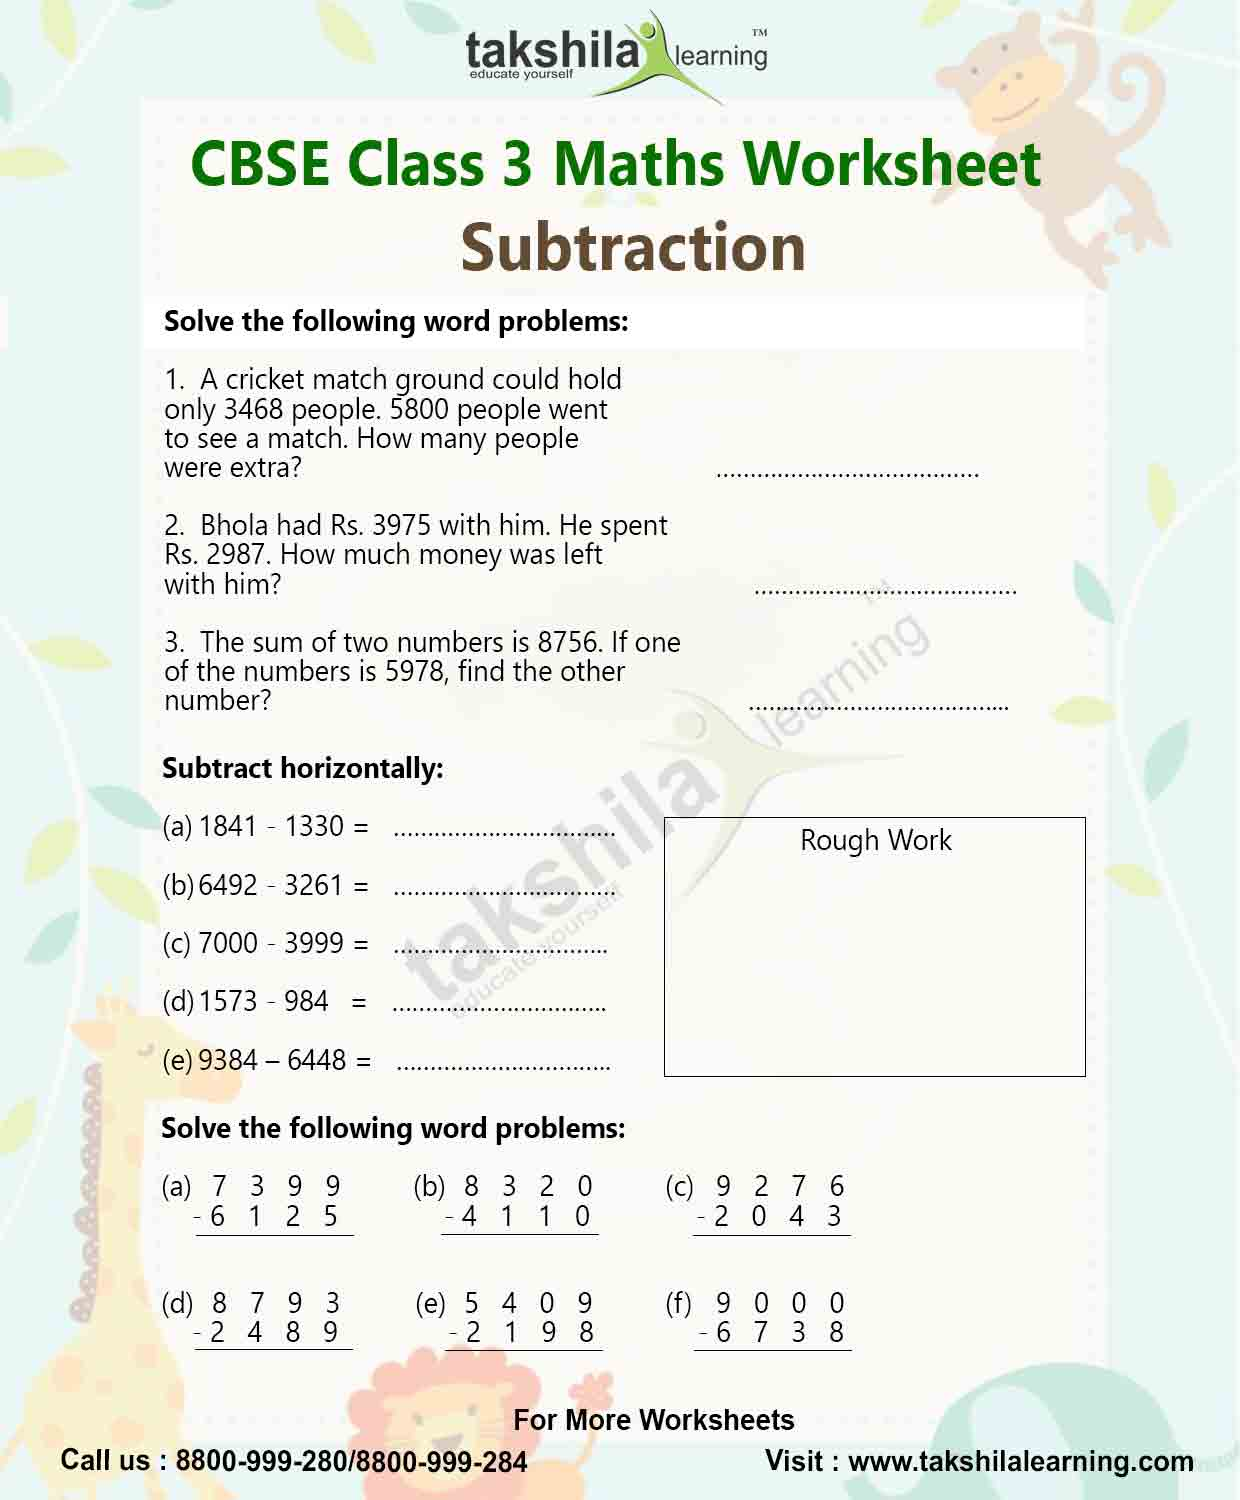 Dps Math Worksheet For Class 3